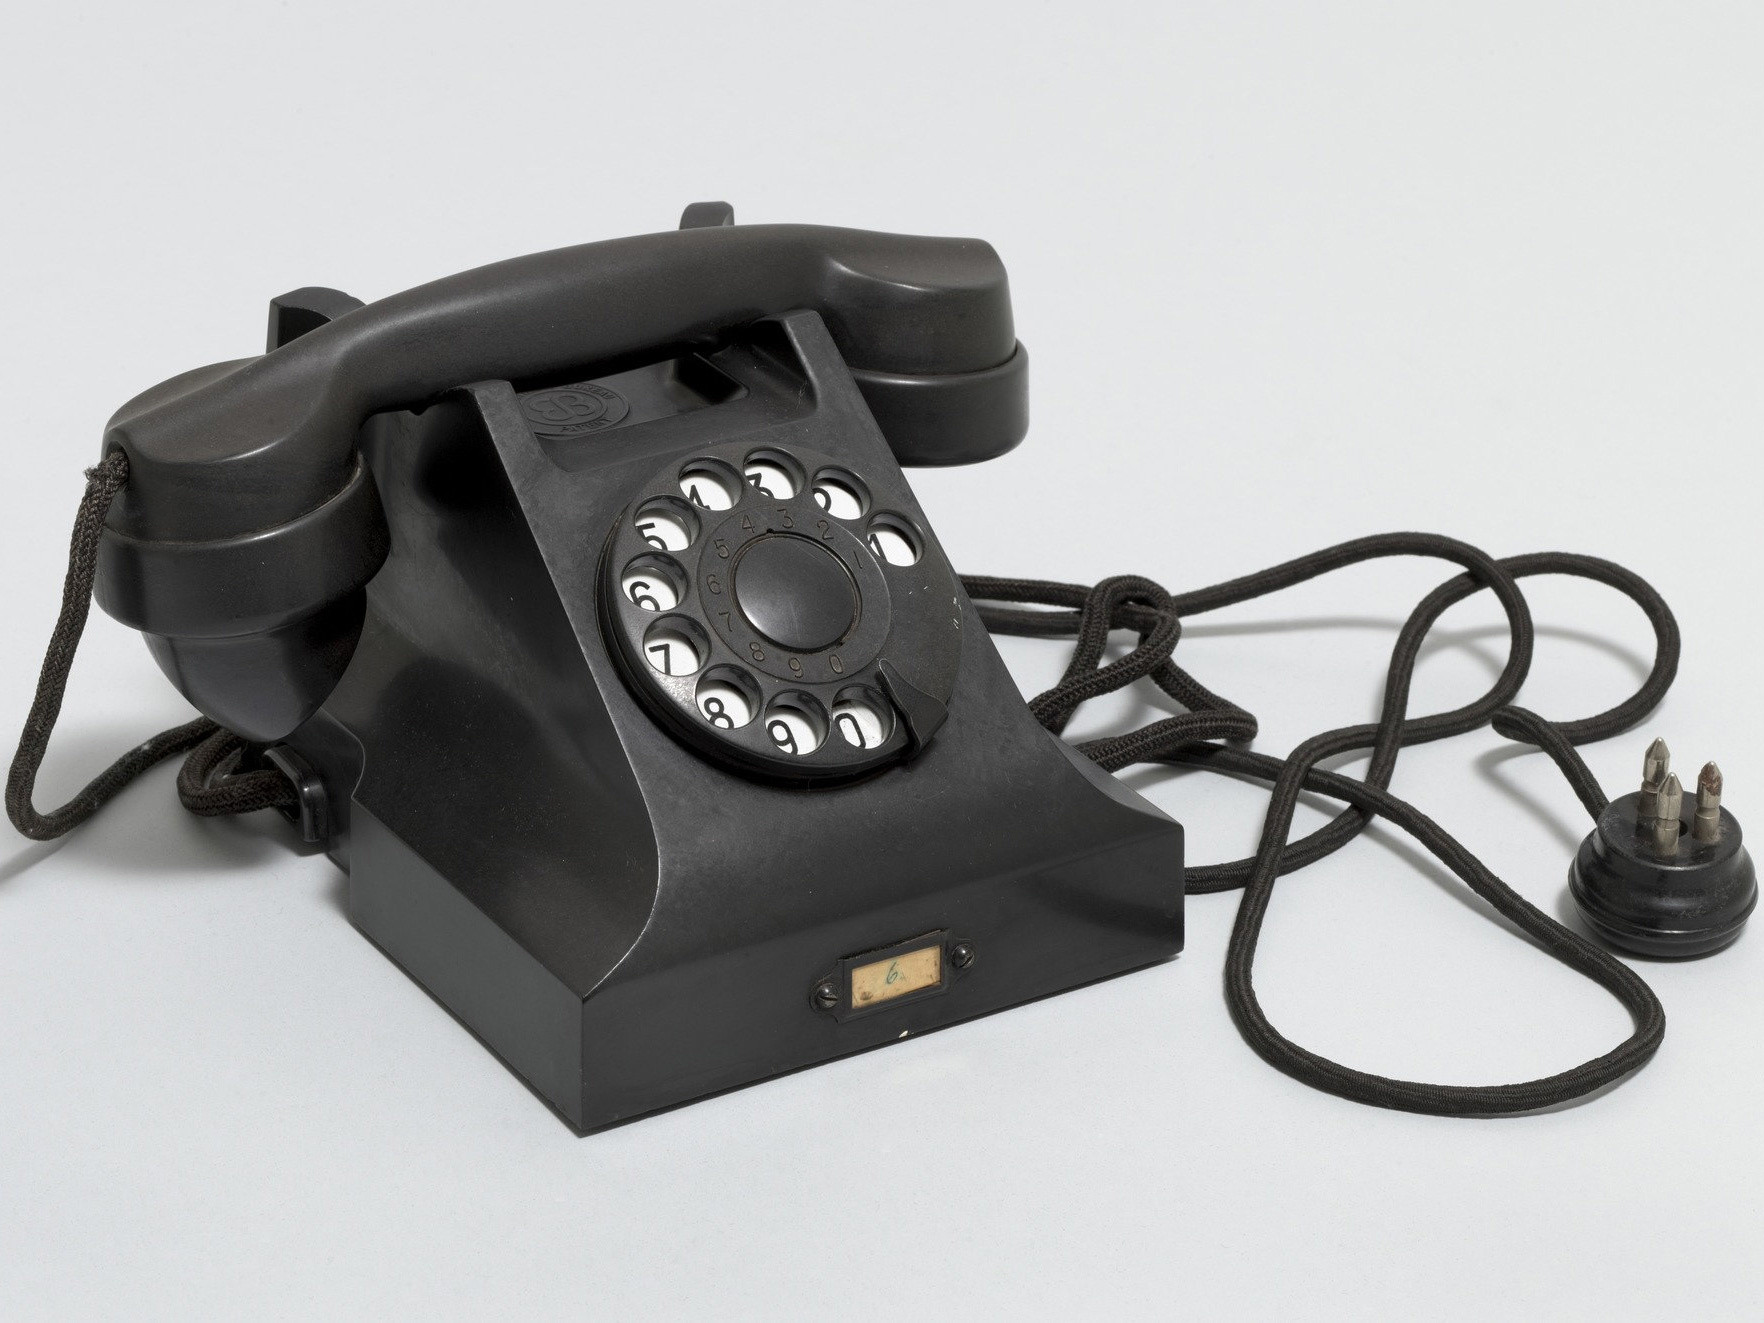 Jean Heiberg. Ericsson Telephone (model DBH 1001). 1932. Bakelite, sheet brass, and painted nickel-plate. Manufacturer: Elektrisk Bureau. Gift of The National Museum – The Museum of Decorative Arts and Design, Oslo